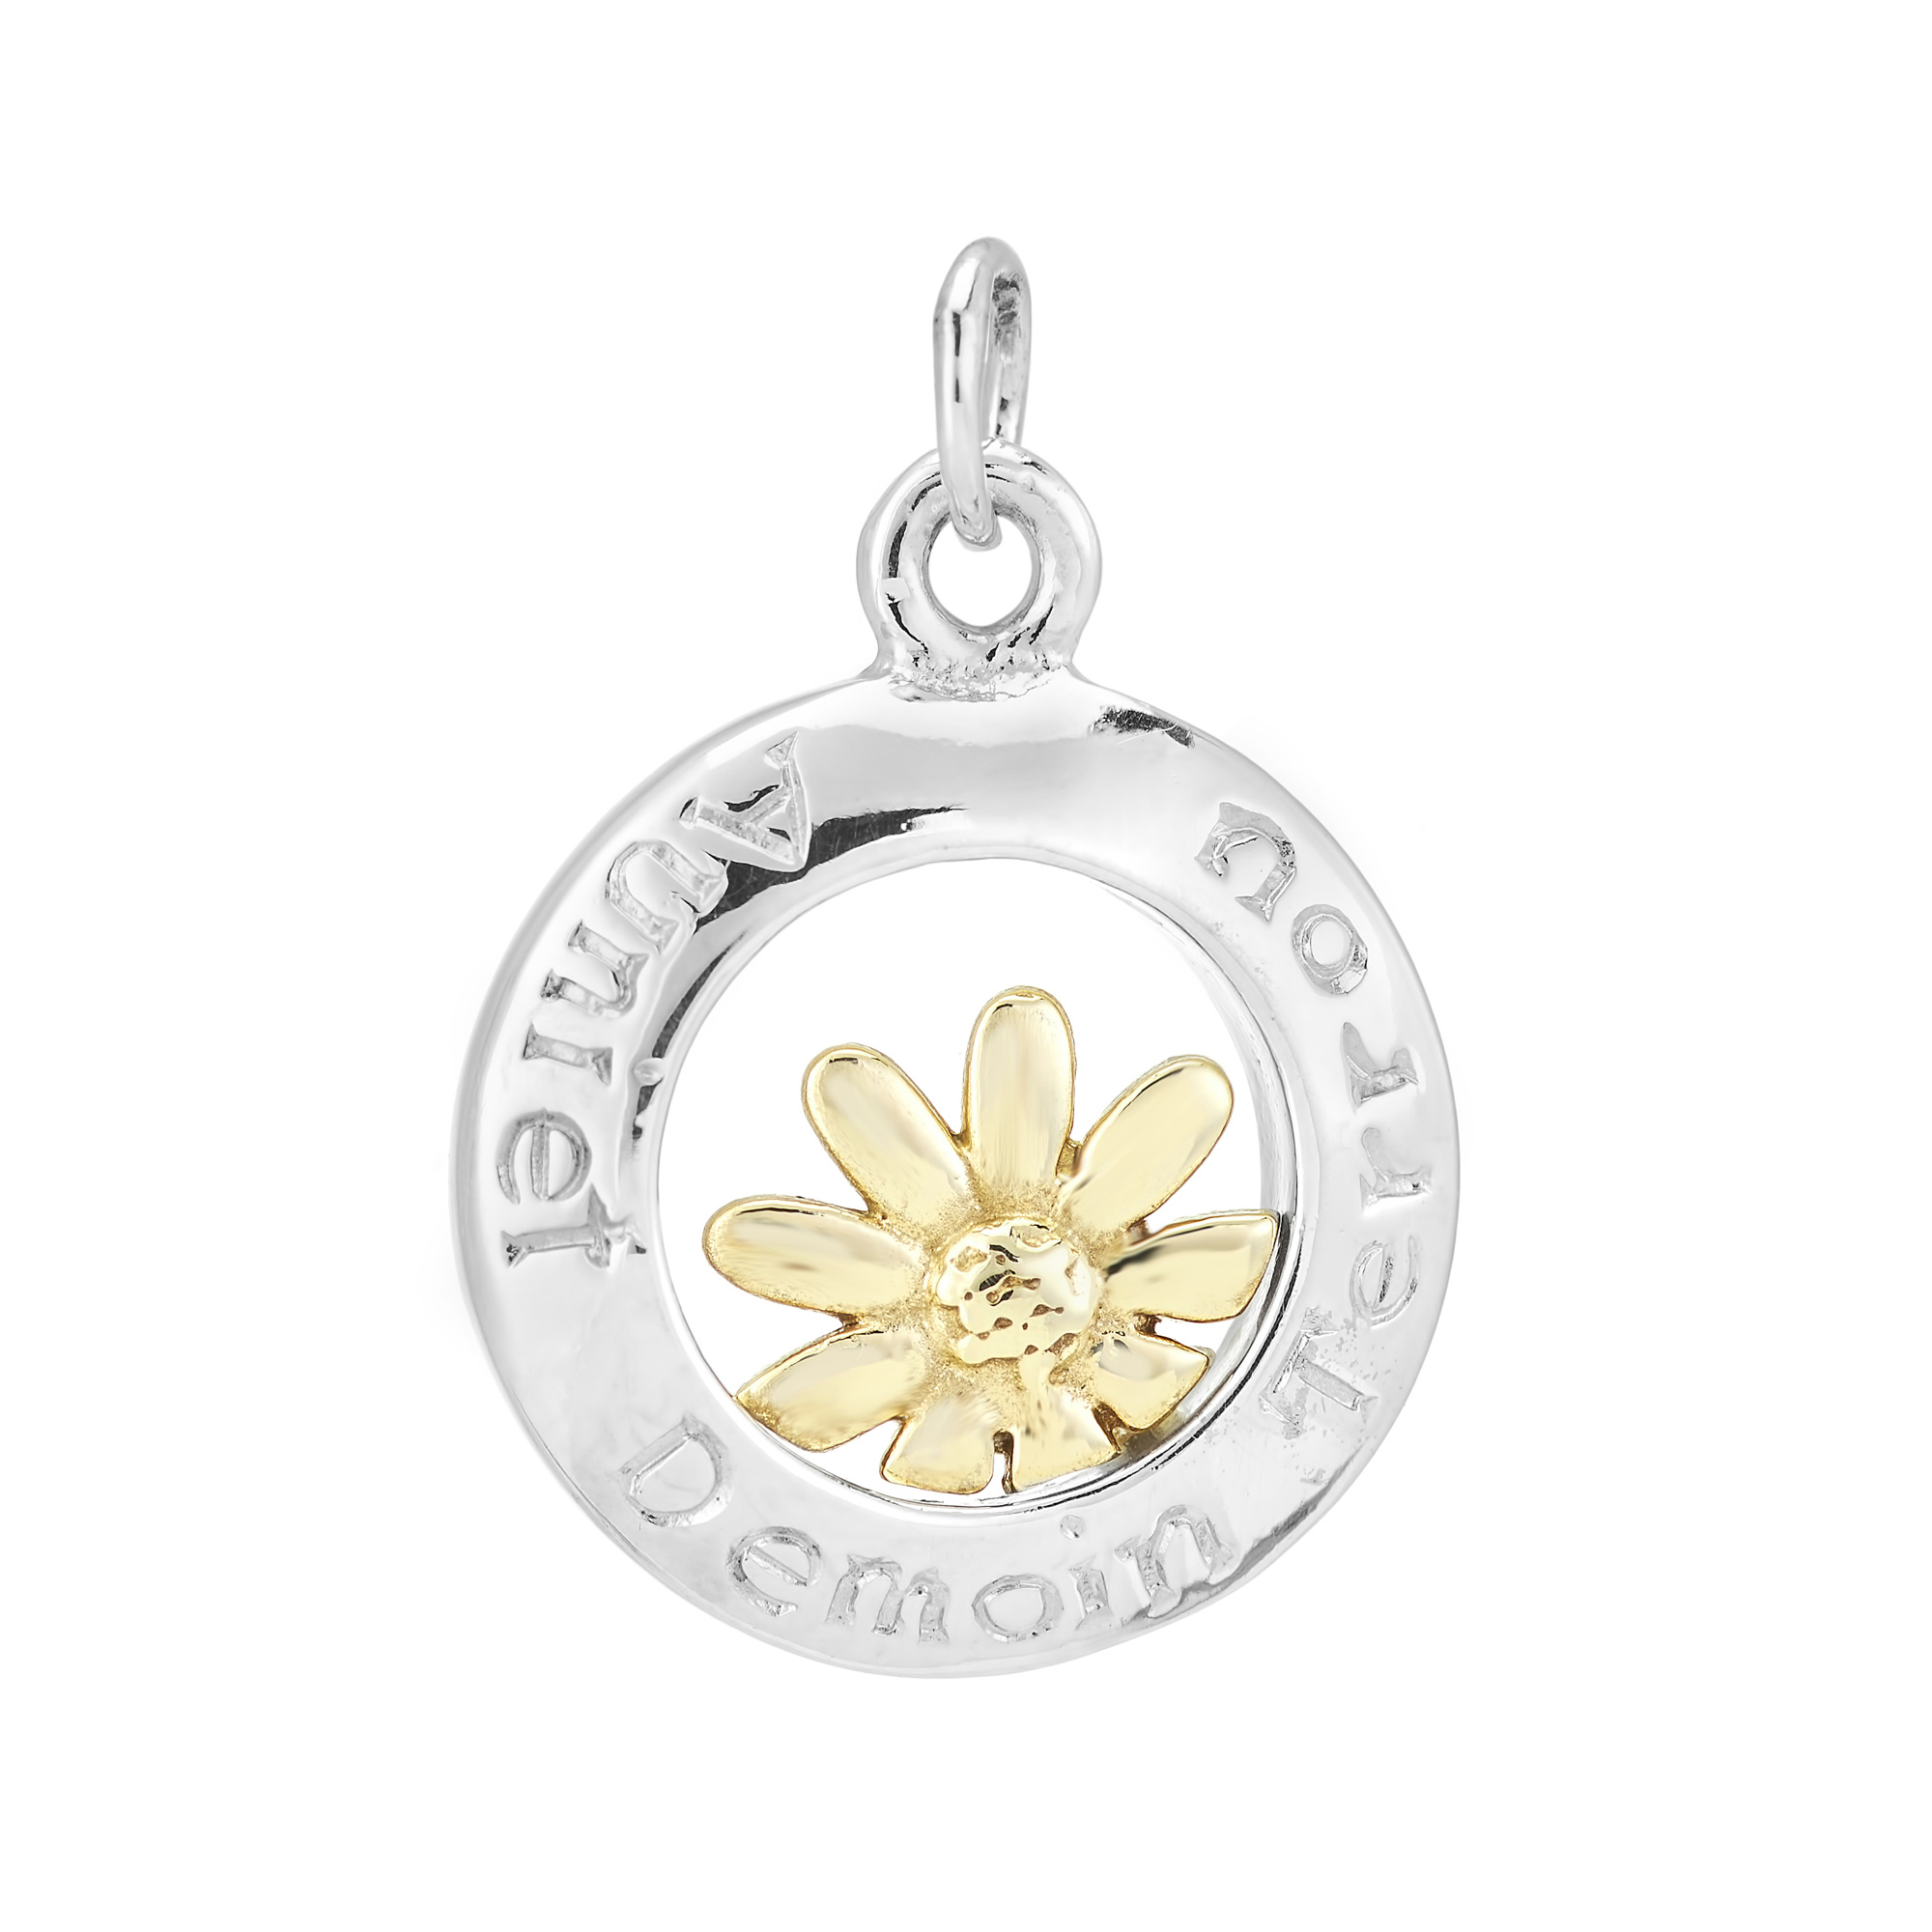 Sterling Silver and 9ct Yellow Gold Charm / Pendant (Today Tomorrow Always)